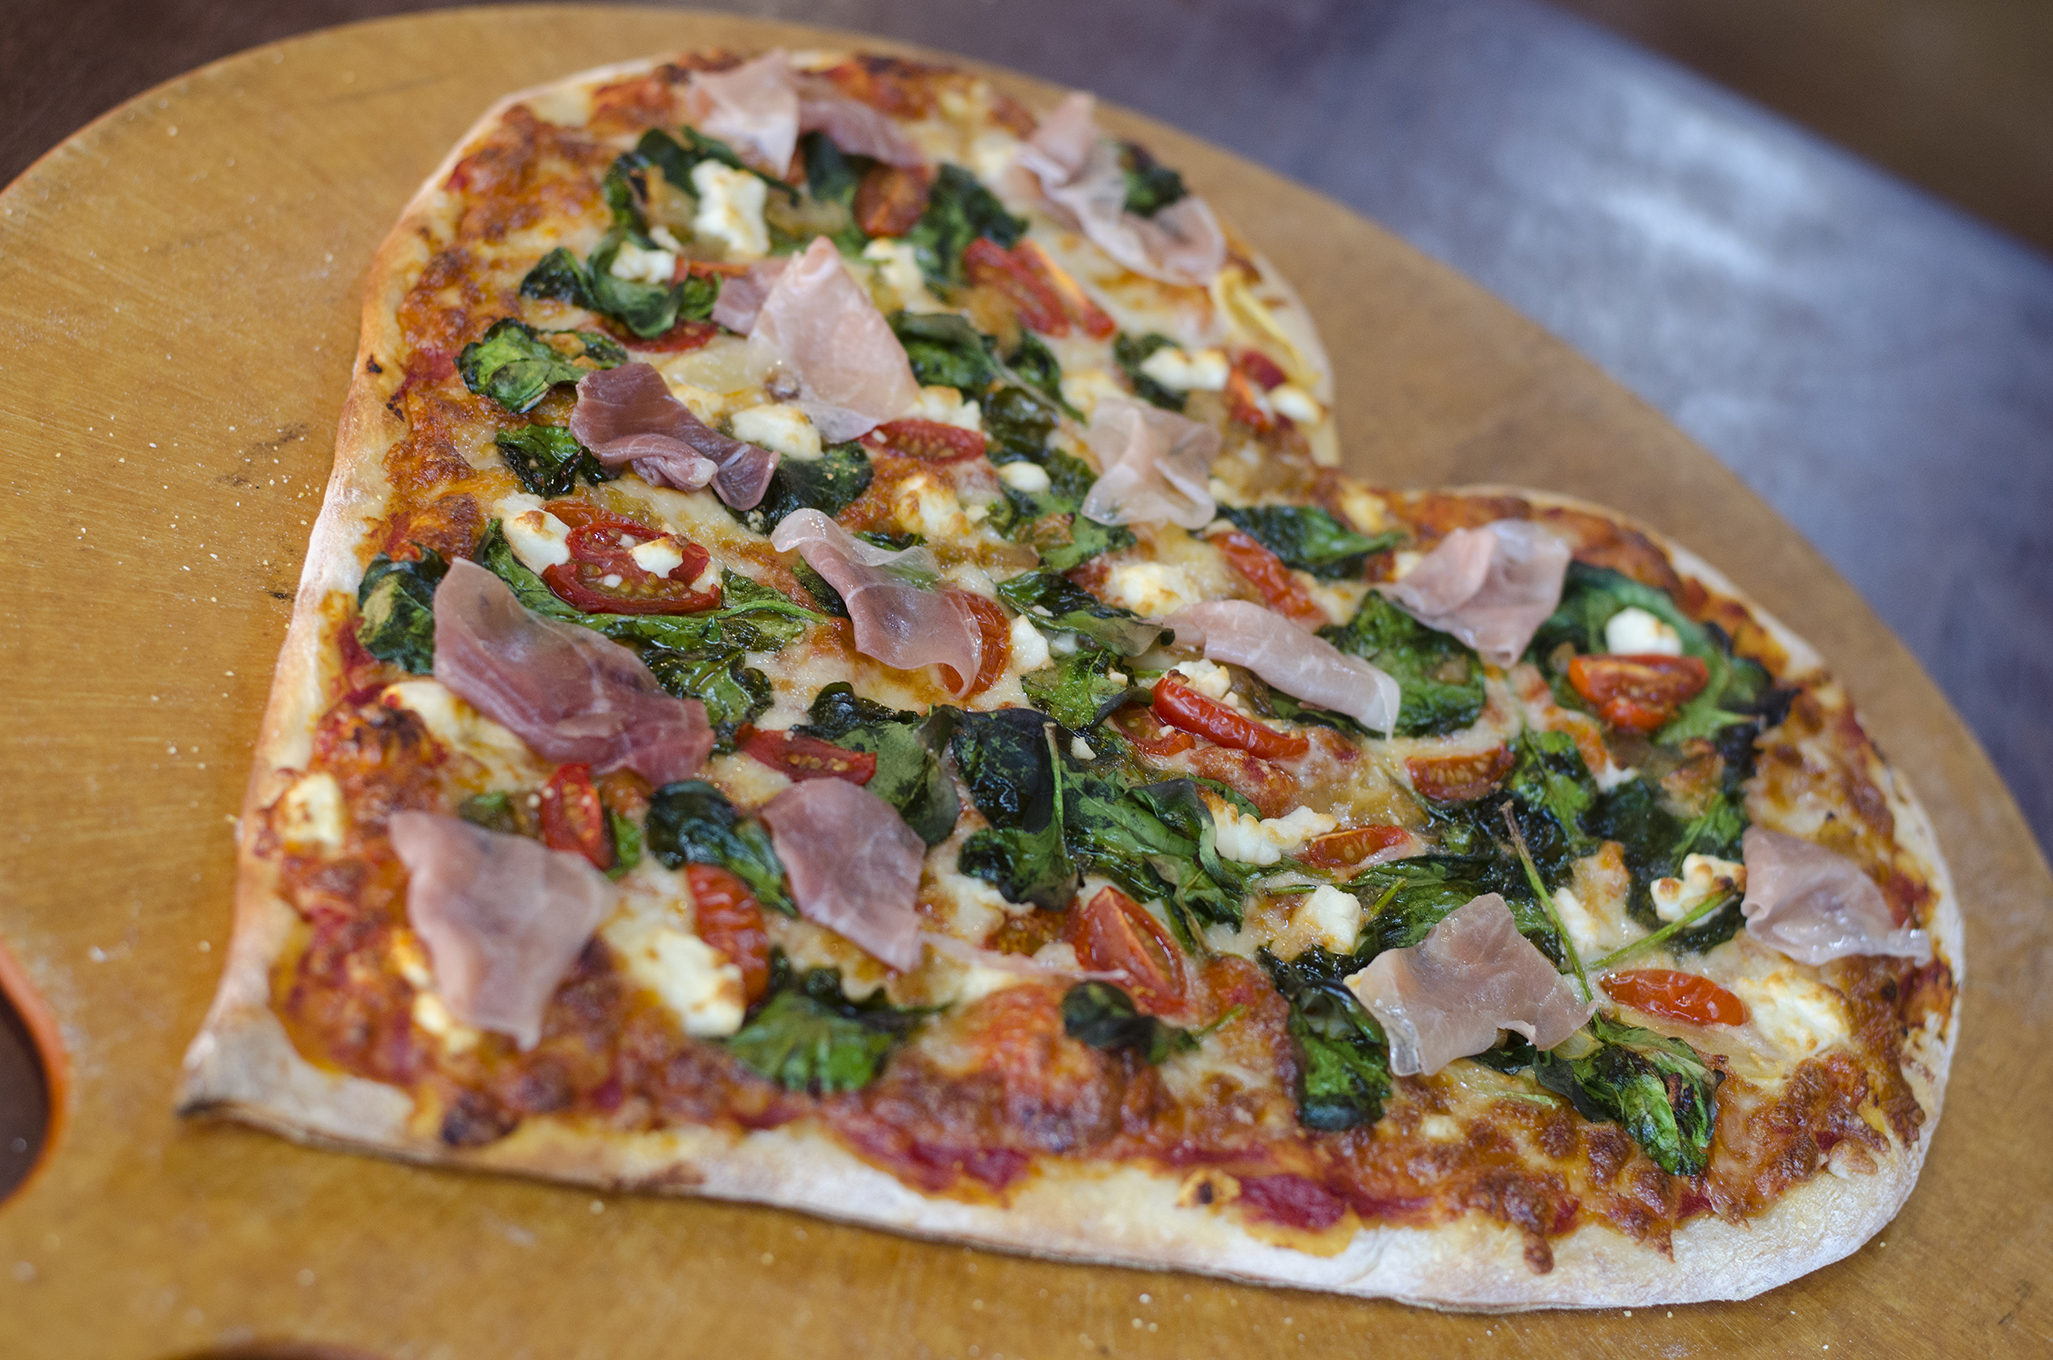 A heart shaped pizza from Arcata Pizzeria is a surefire way to our heart.